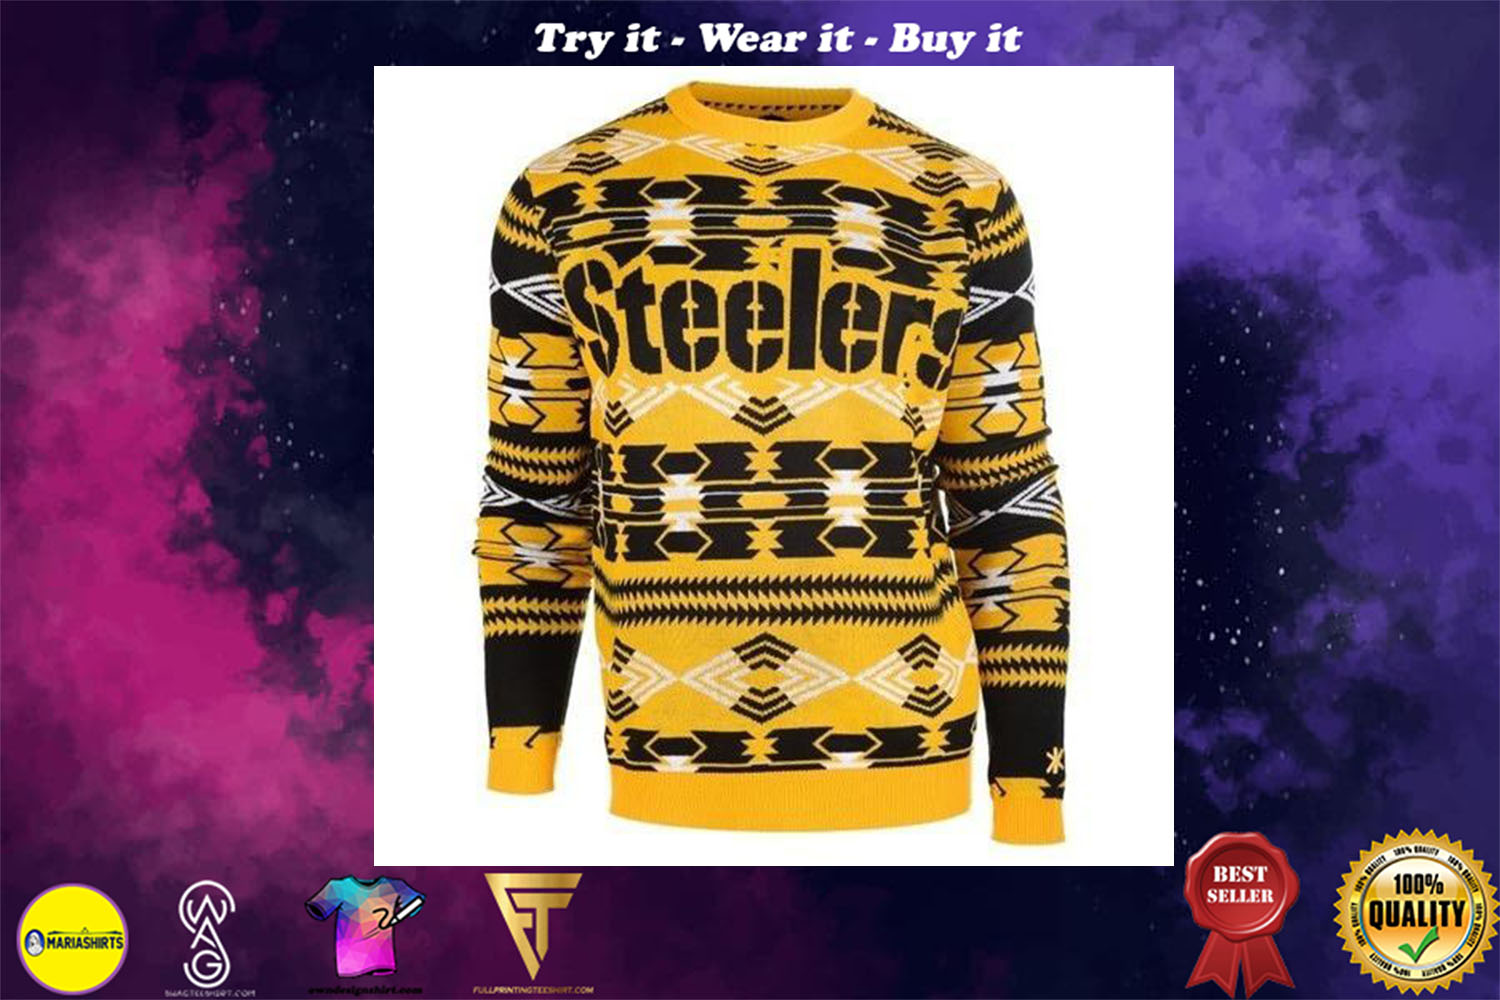 [special edition] pittsburgh steelers aztec print ugly christmas sweater - maria